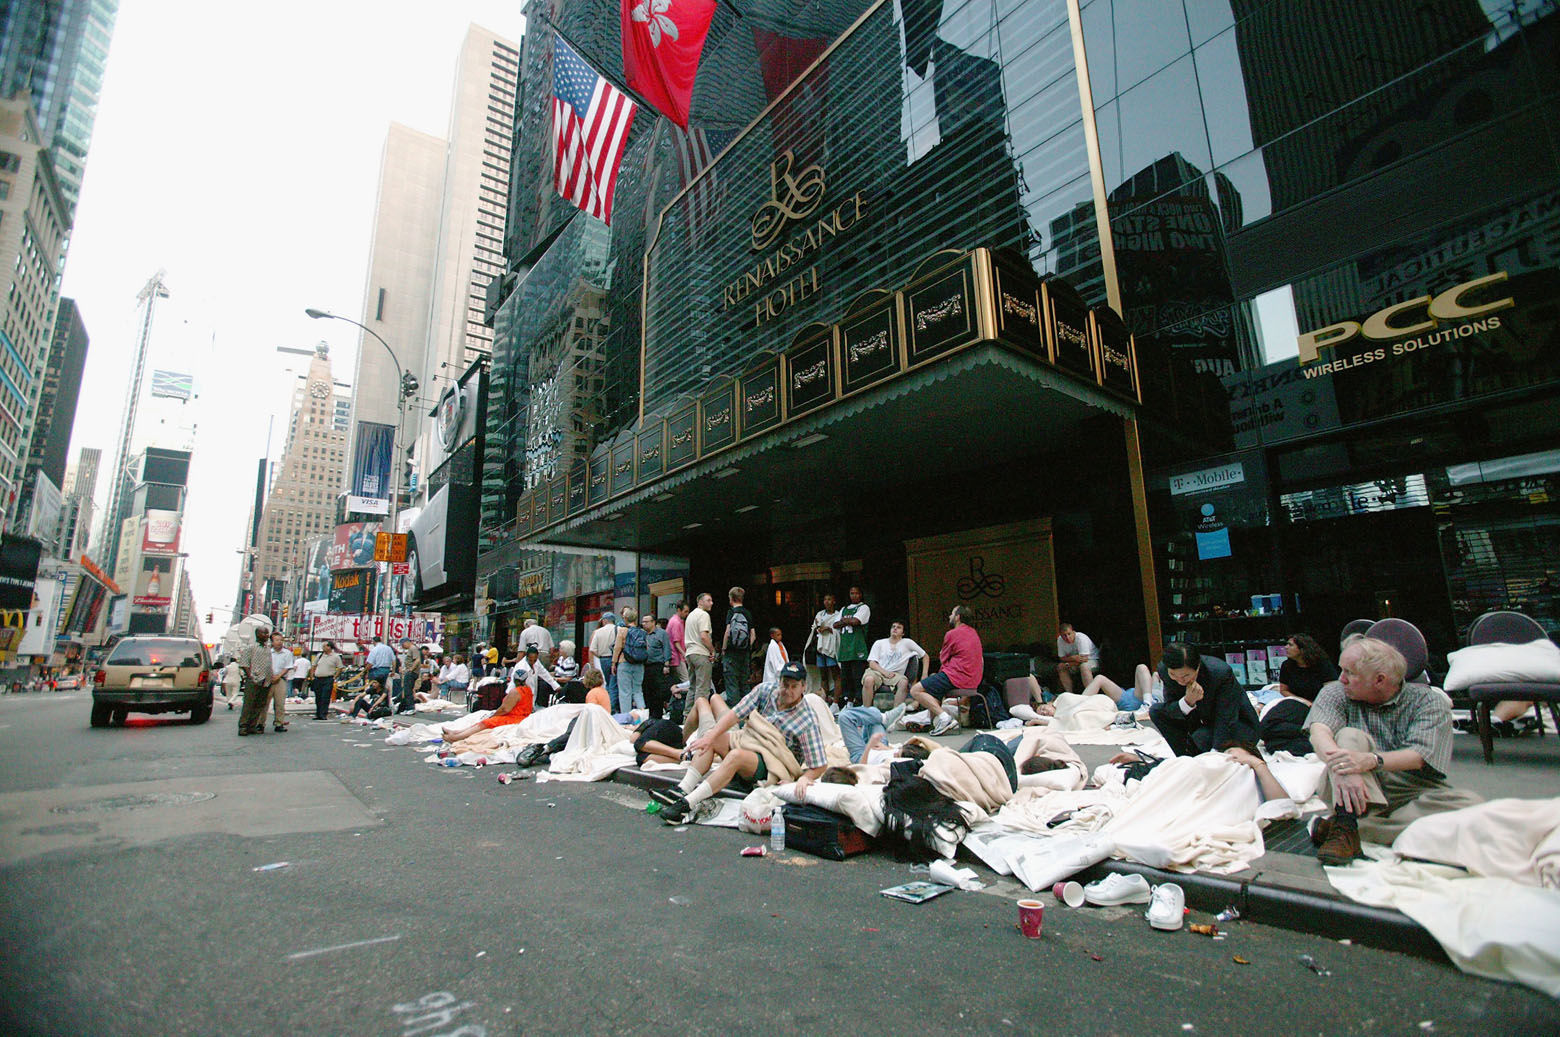 NEW YORK - AUGUST 15:  People sleep on the sidewalk outside the Renaisance Hotel during the east coast blackout August 15, 2003 in New York City. Power is slowly returning to parts of the city after the worst blackout in history. (Photo by Matthew Peyton/Getty Images)